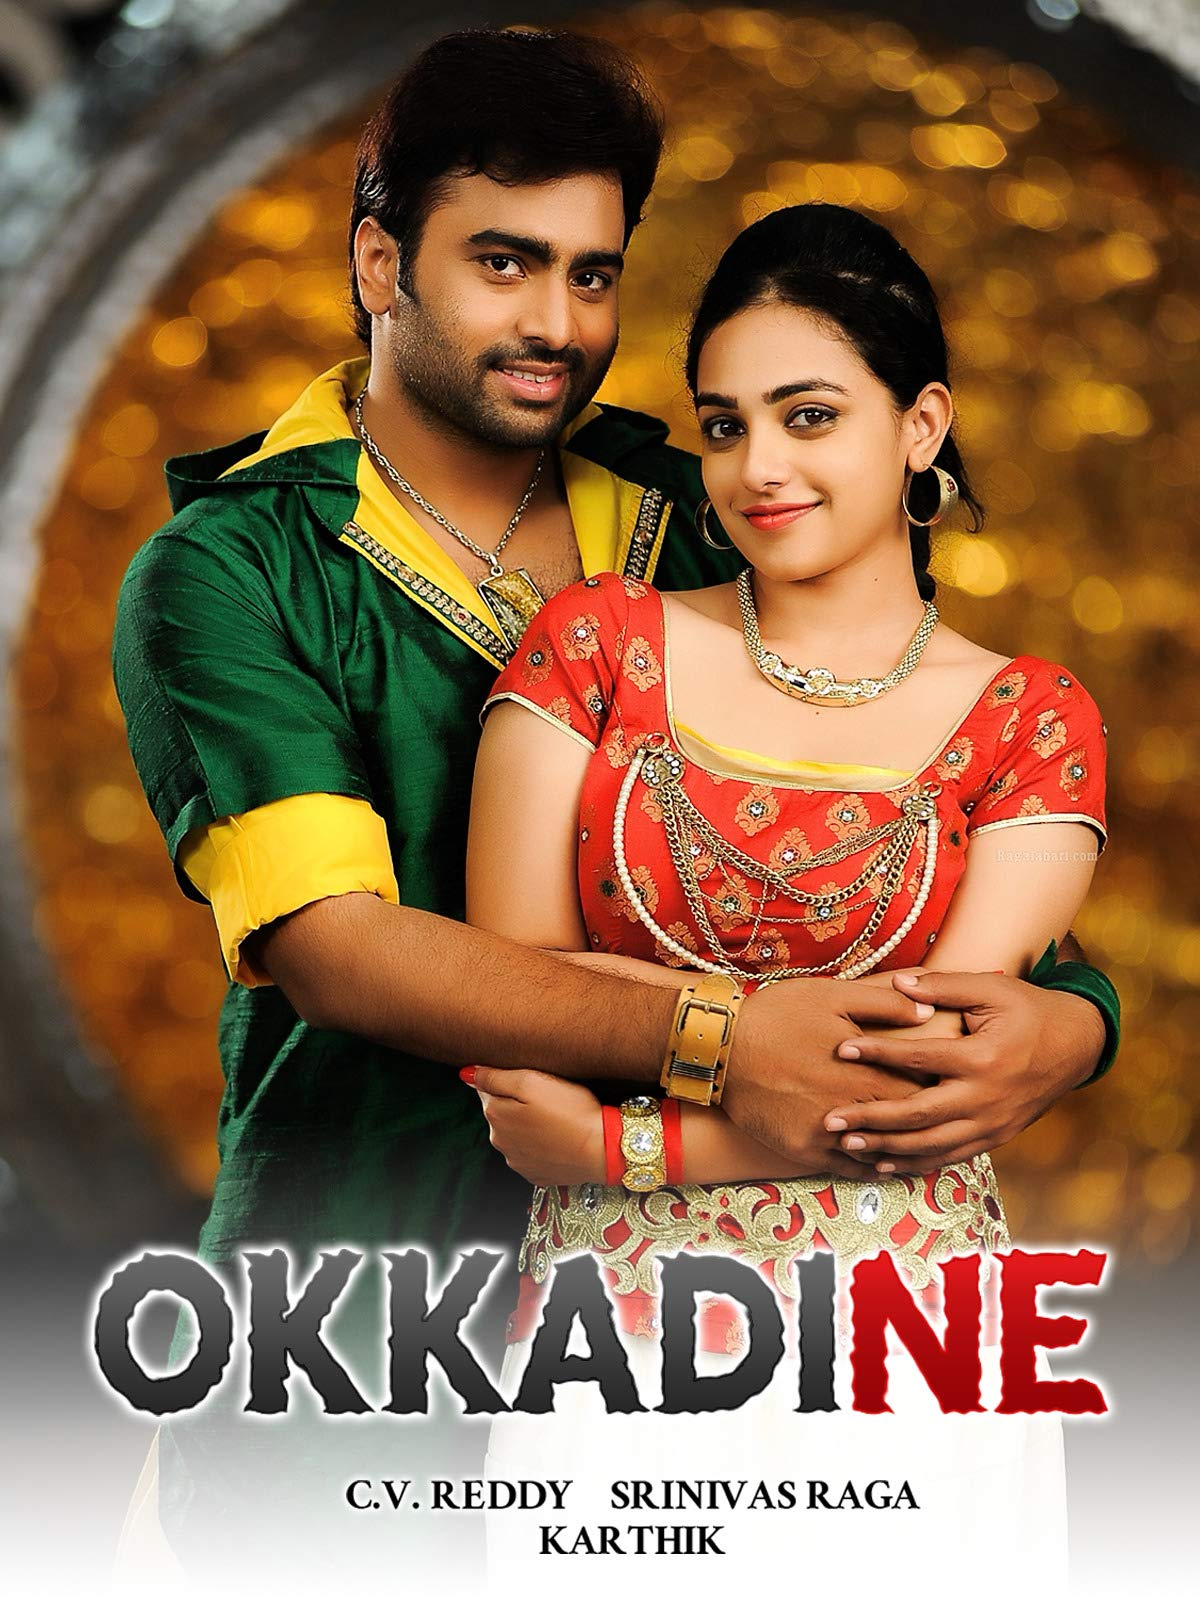 Aur Ek Dushman (Okkadine) 2020 Hindi Dubbed 300MB HDRip 480p Download